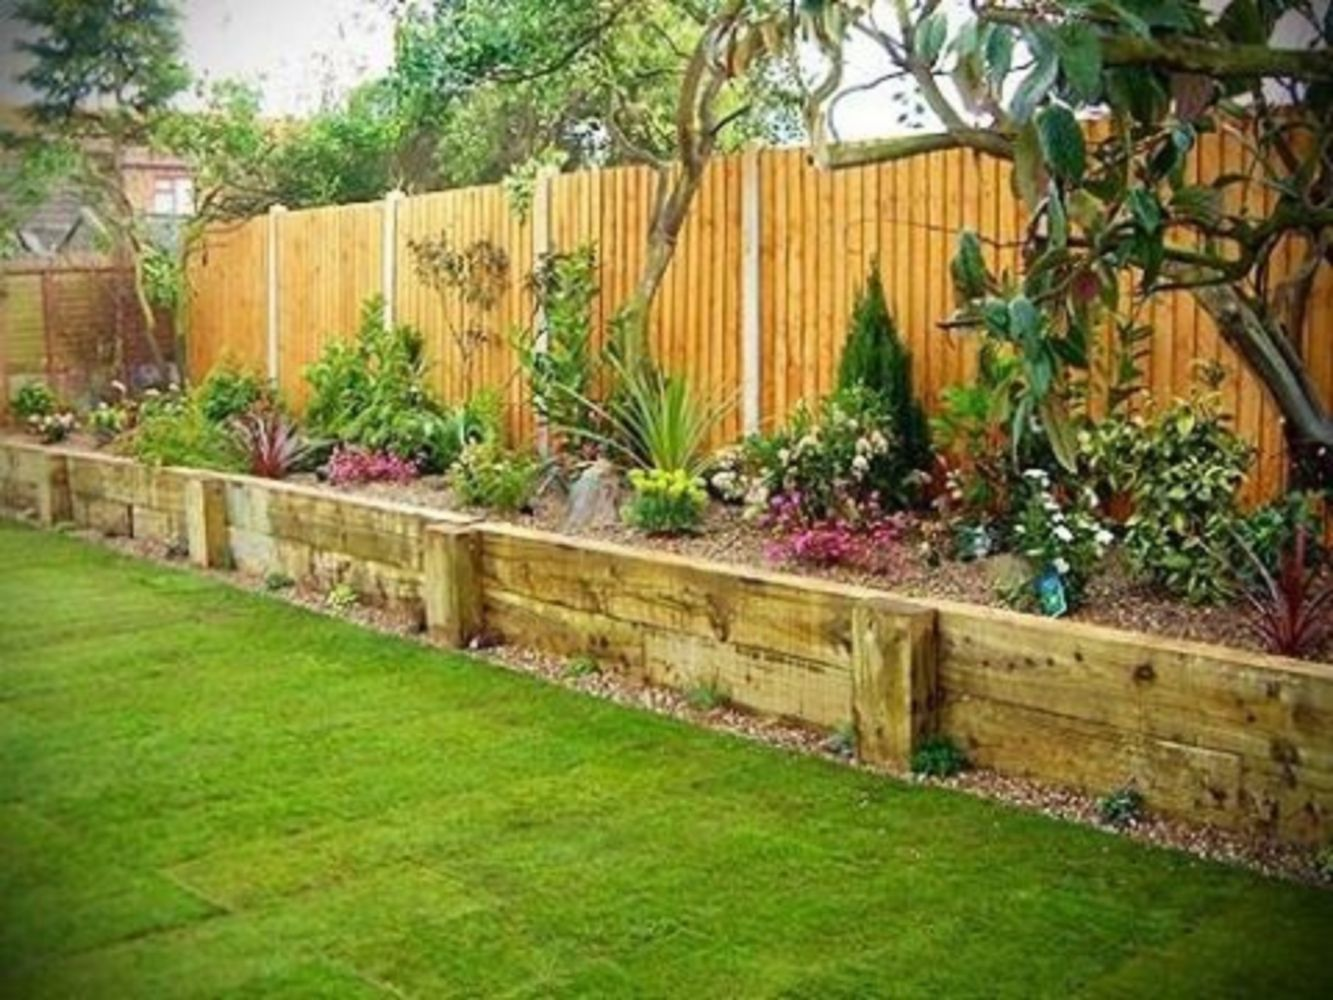 privacy fence ideas - Yahoo Image Search Results | Lakeview Drive ...